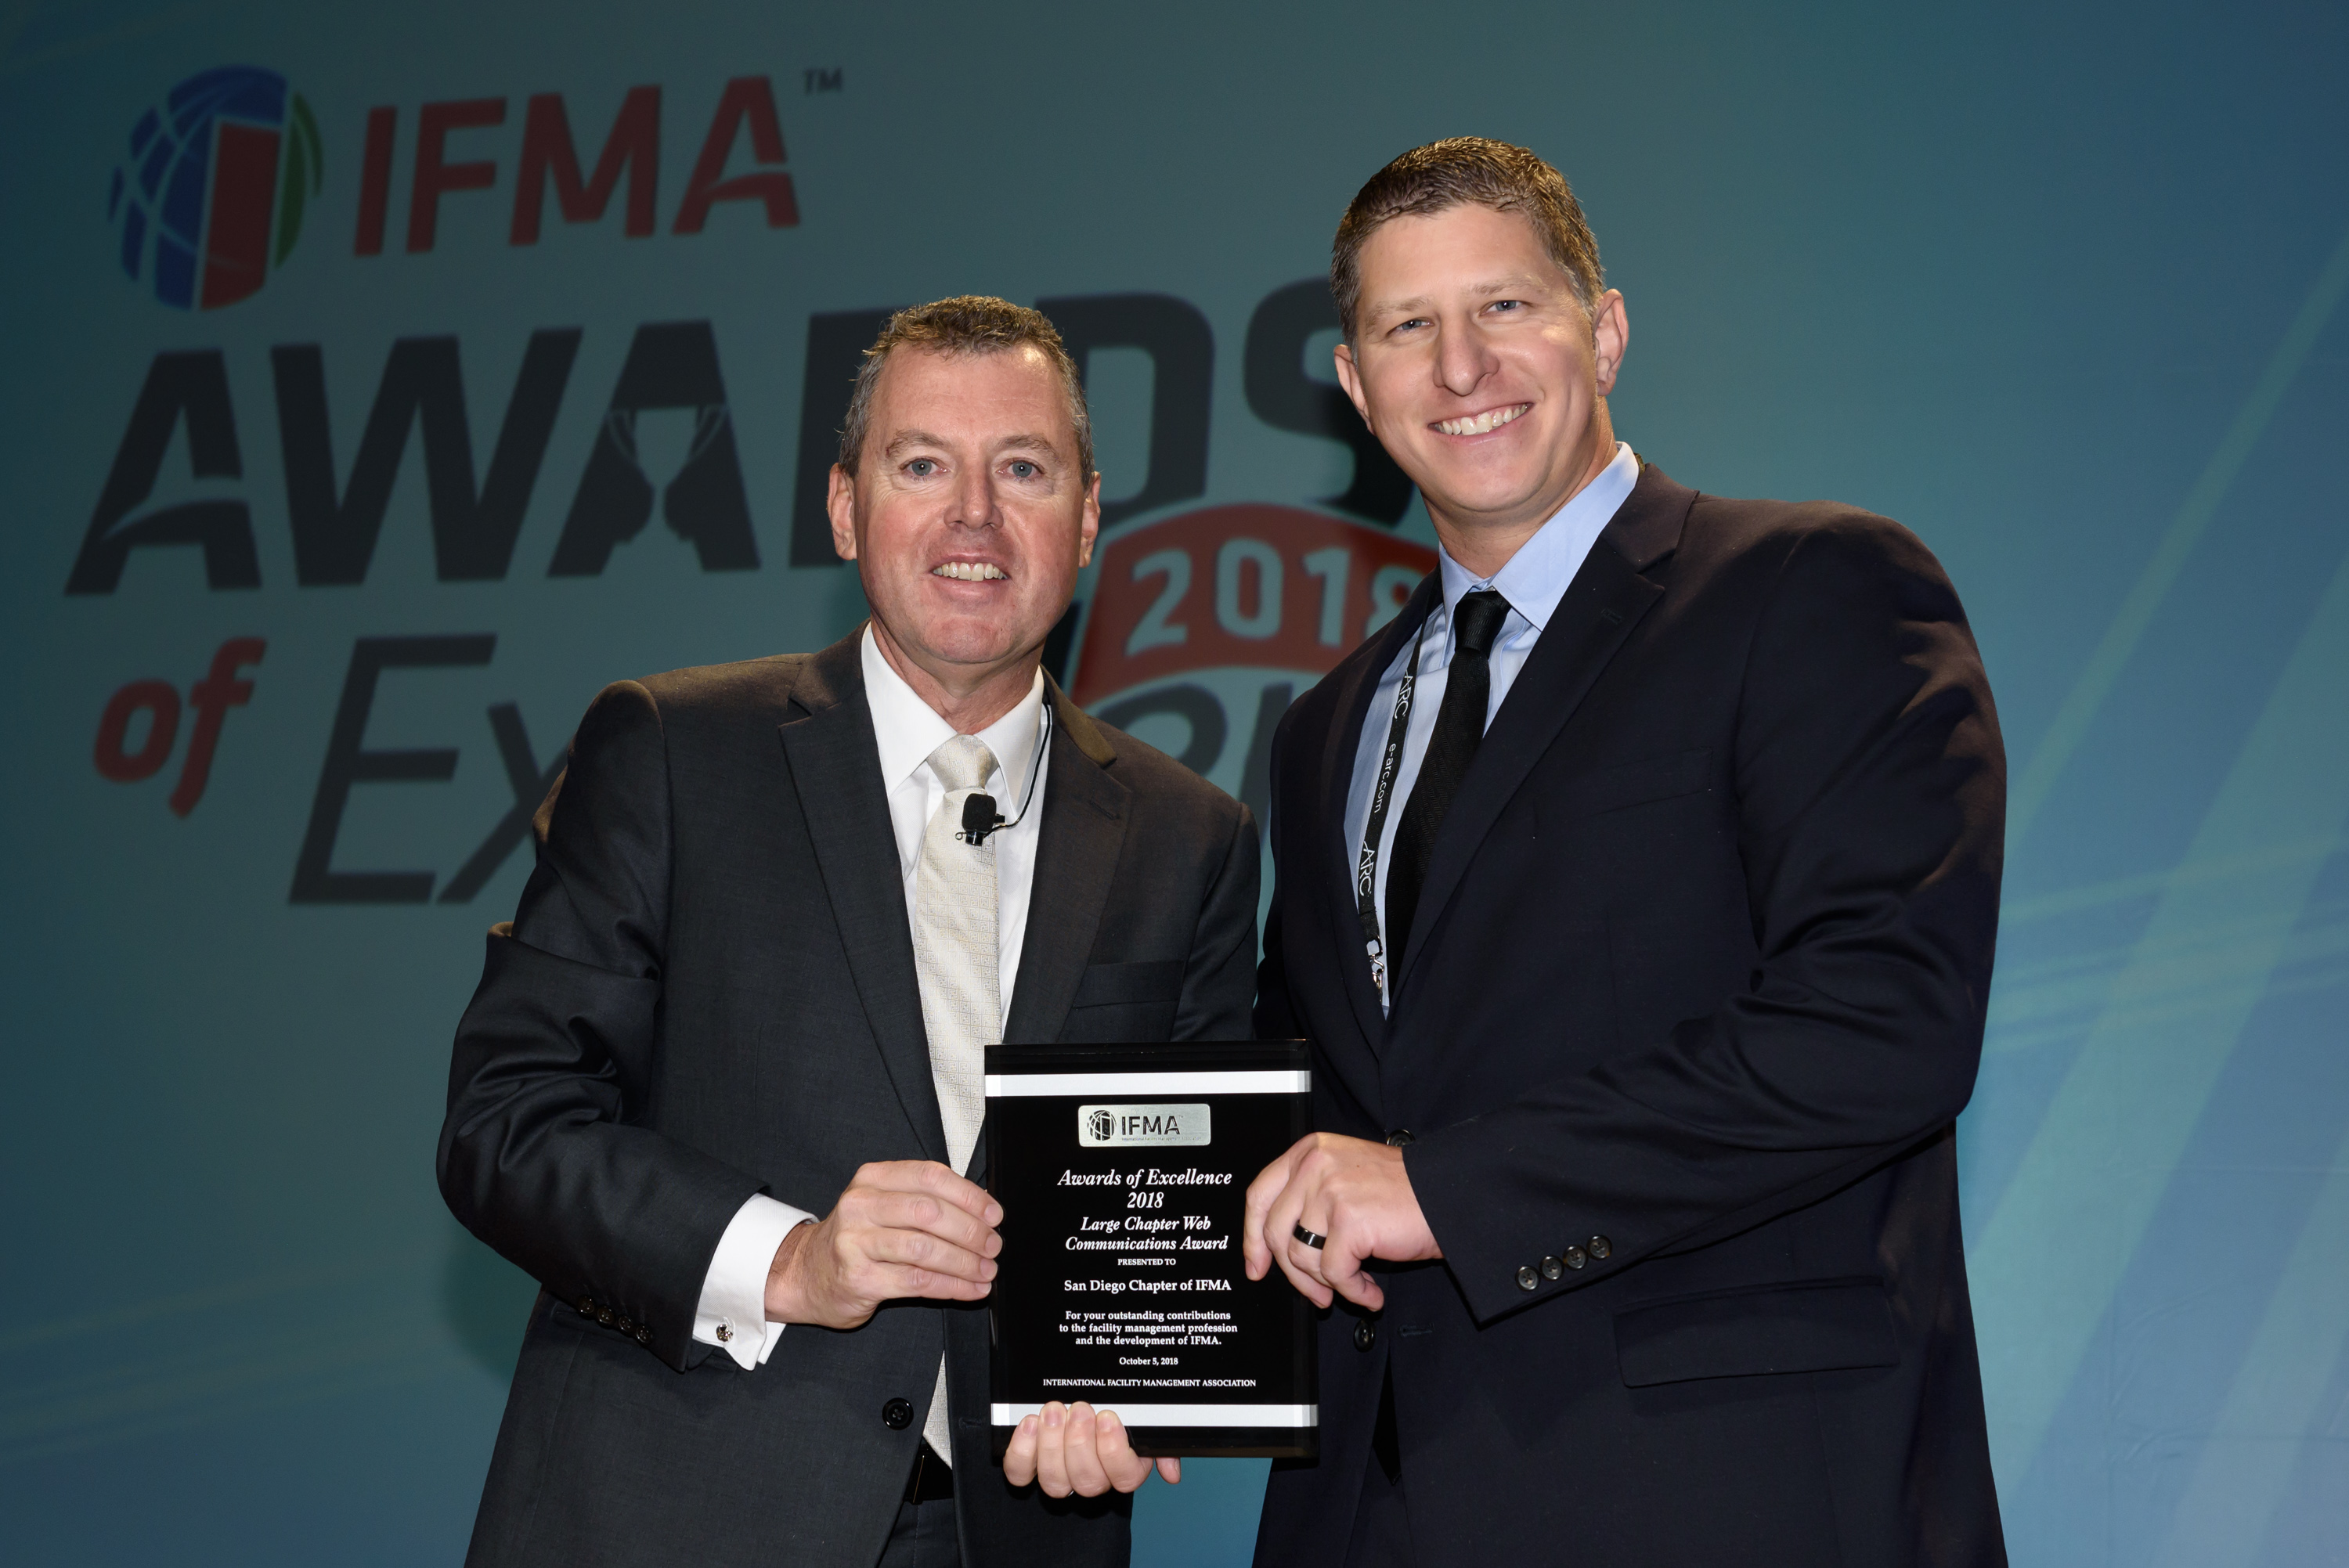 San Diego of IFMA receives Large Chapter Award of Excellence in Web Communications